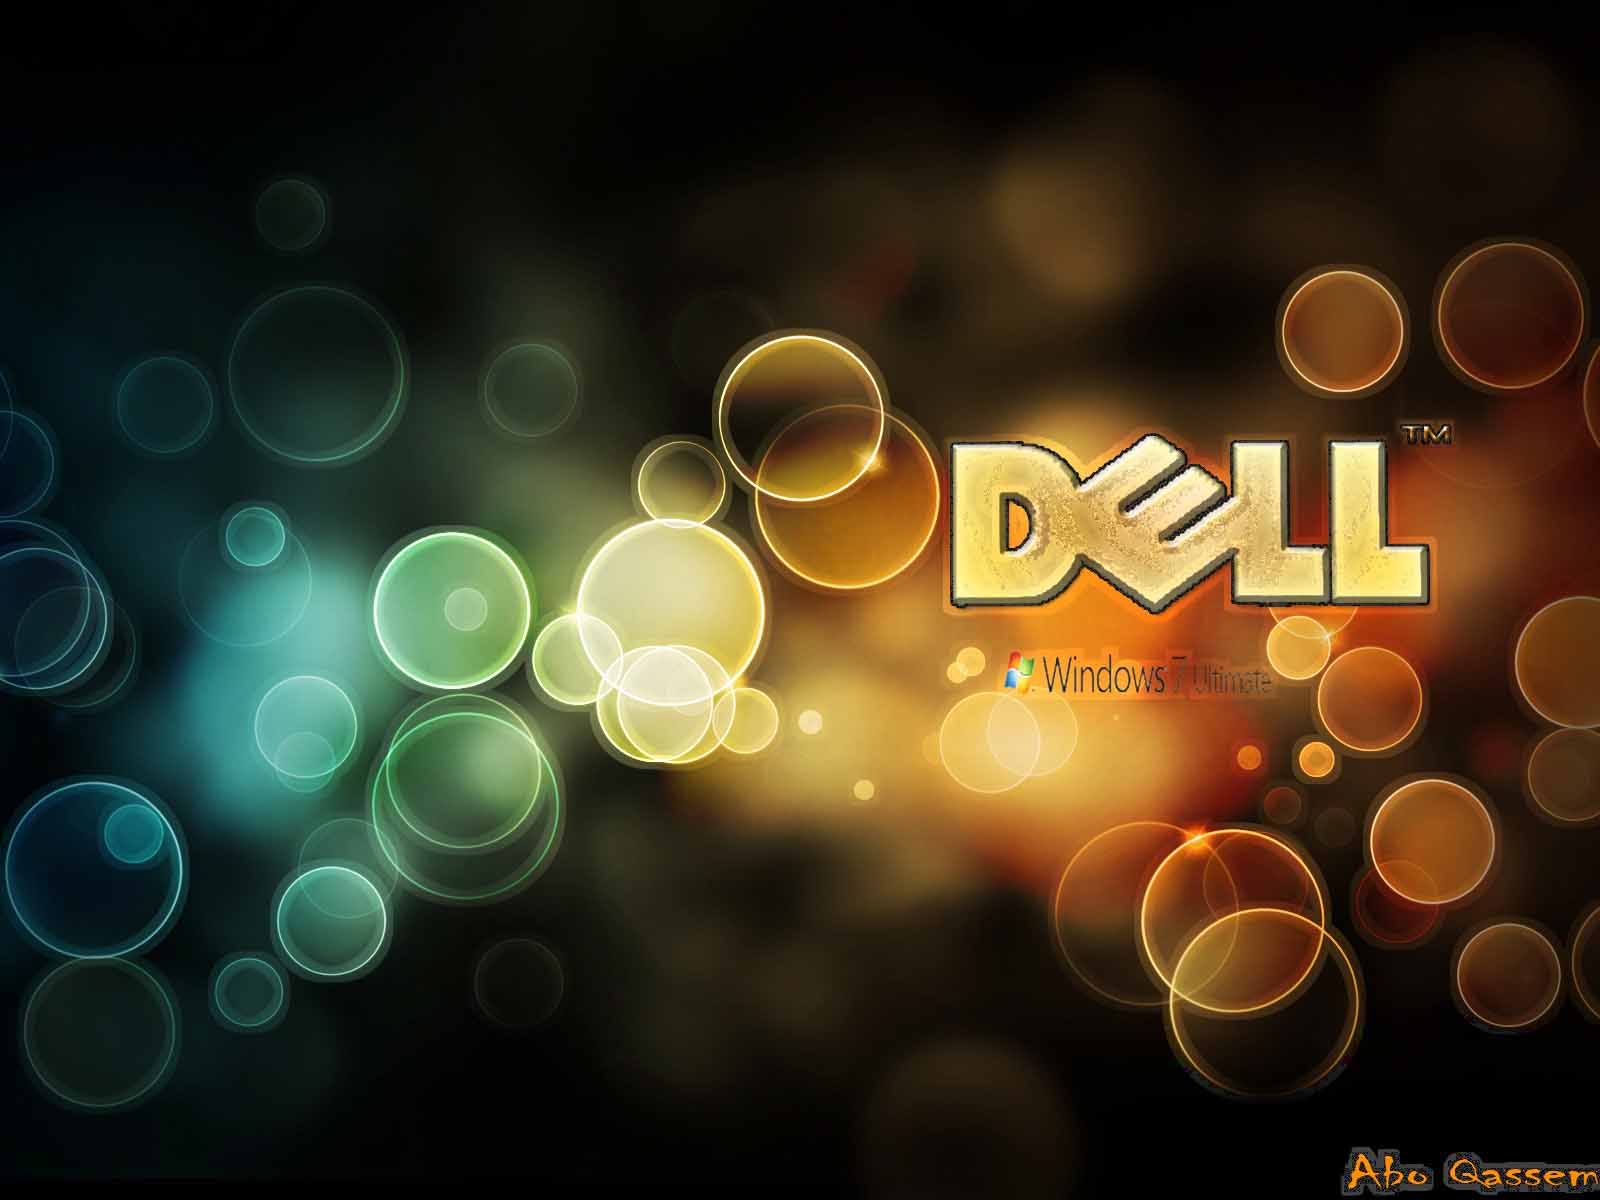 Wallpaper download for laptop - Laptop Dell Wallpapers14 Jpg